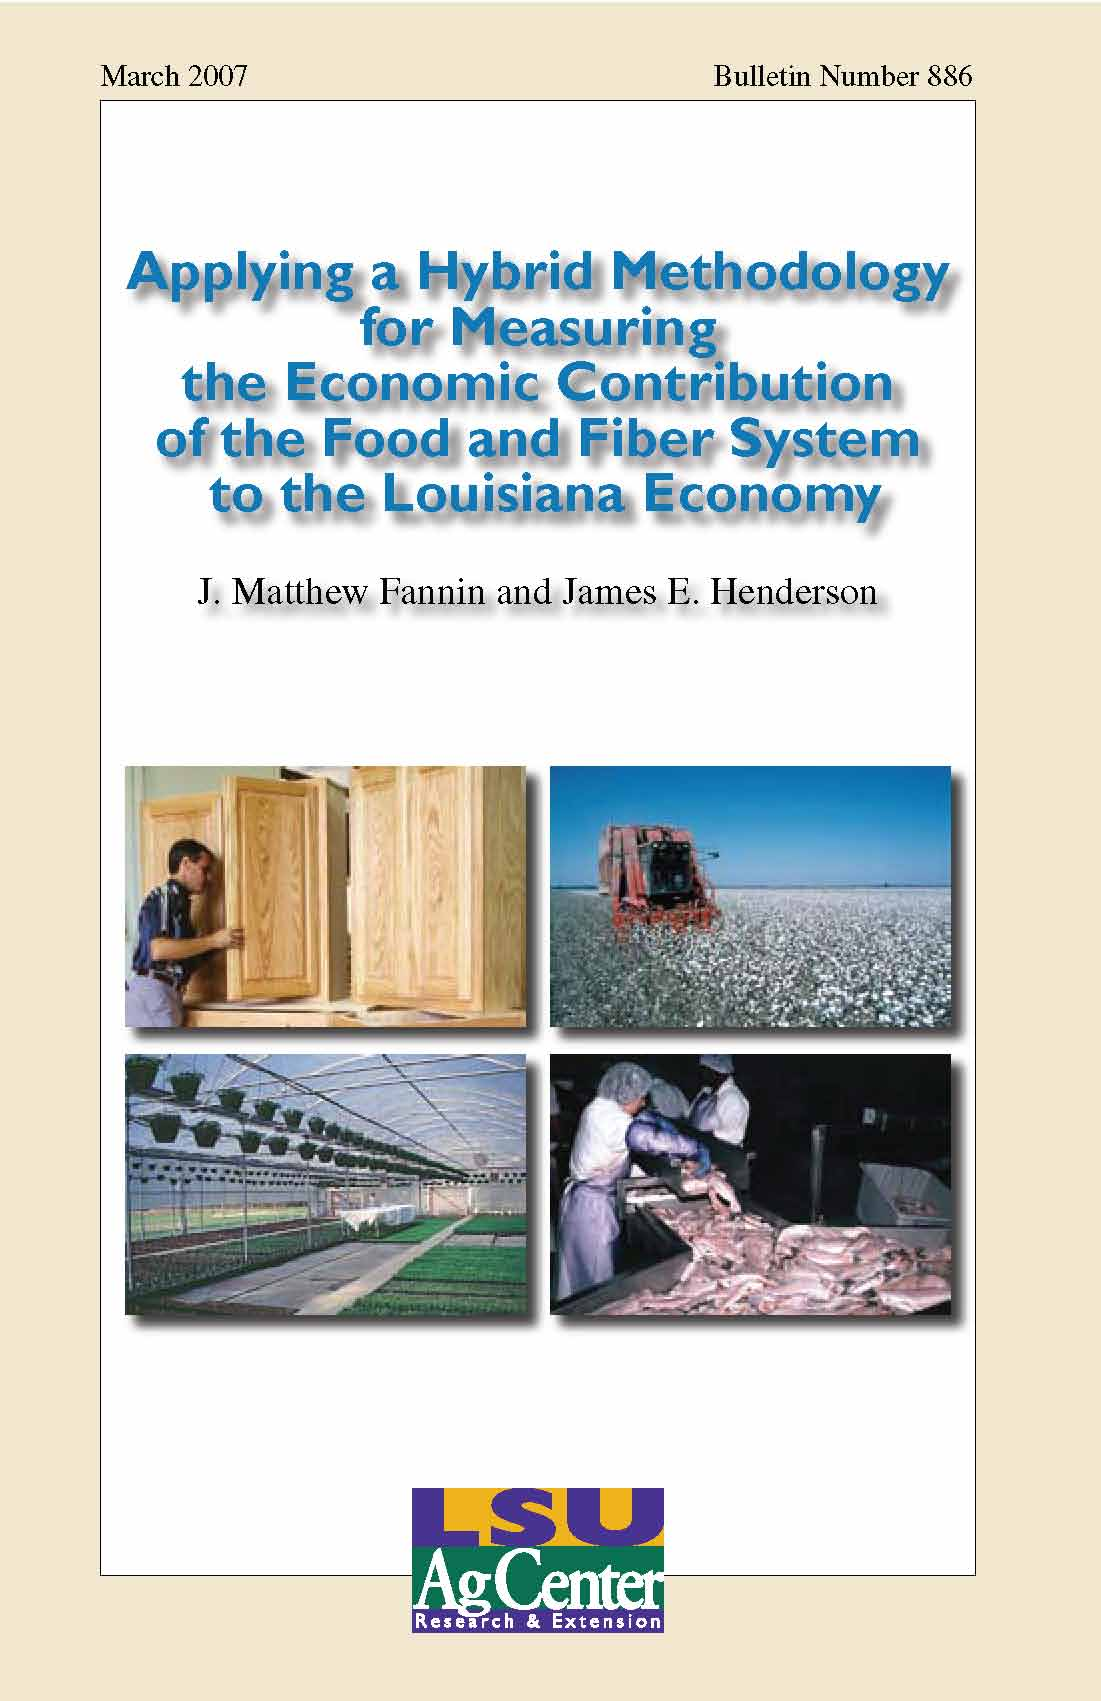 Applying a Hybrid Methodology for Measuring the Economic Contribution of the Food and Fiber System to the Louisiana Economy